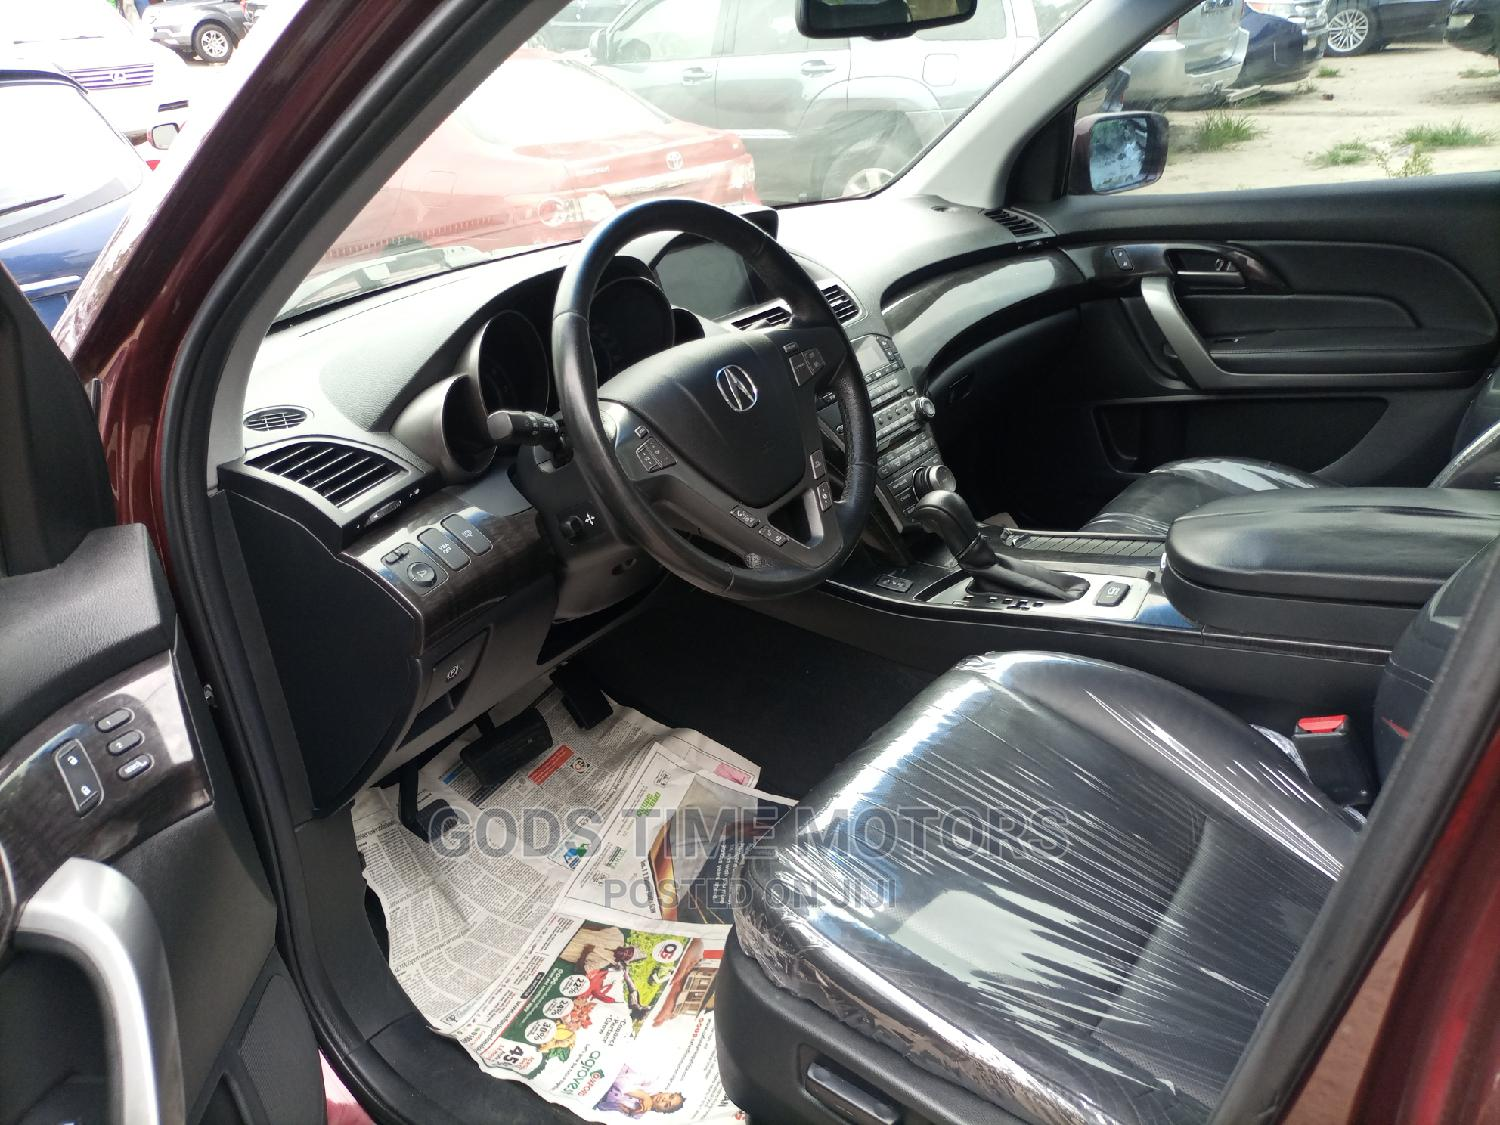 Acura MDX 2008 SUV 4dr AWD (3.7 6cyl 5A) Red | Cars for sale in Apapa, Lagos State, Nigeria